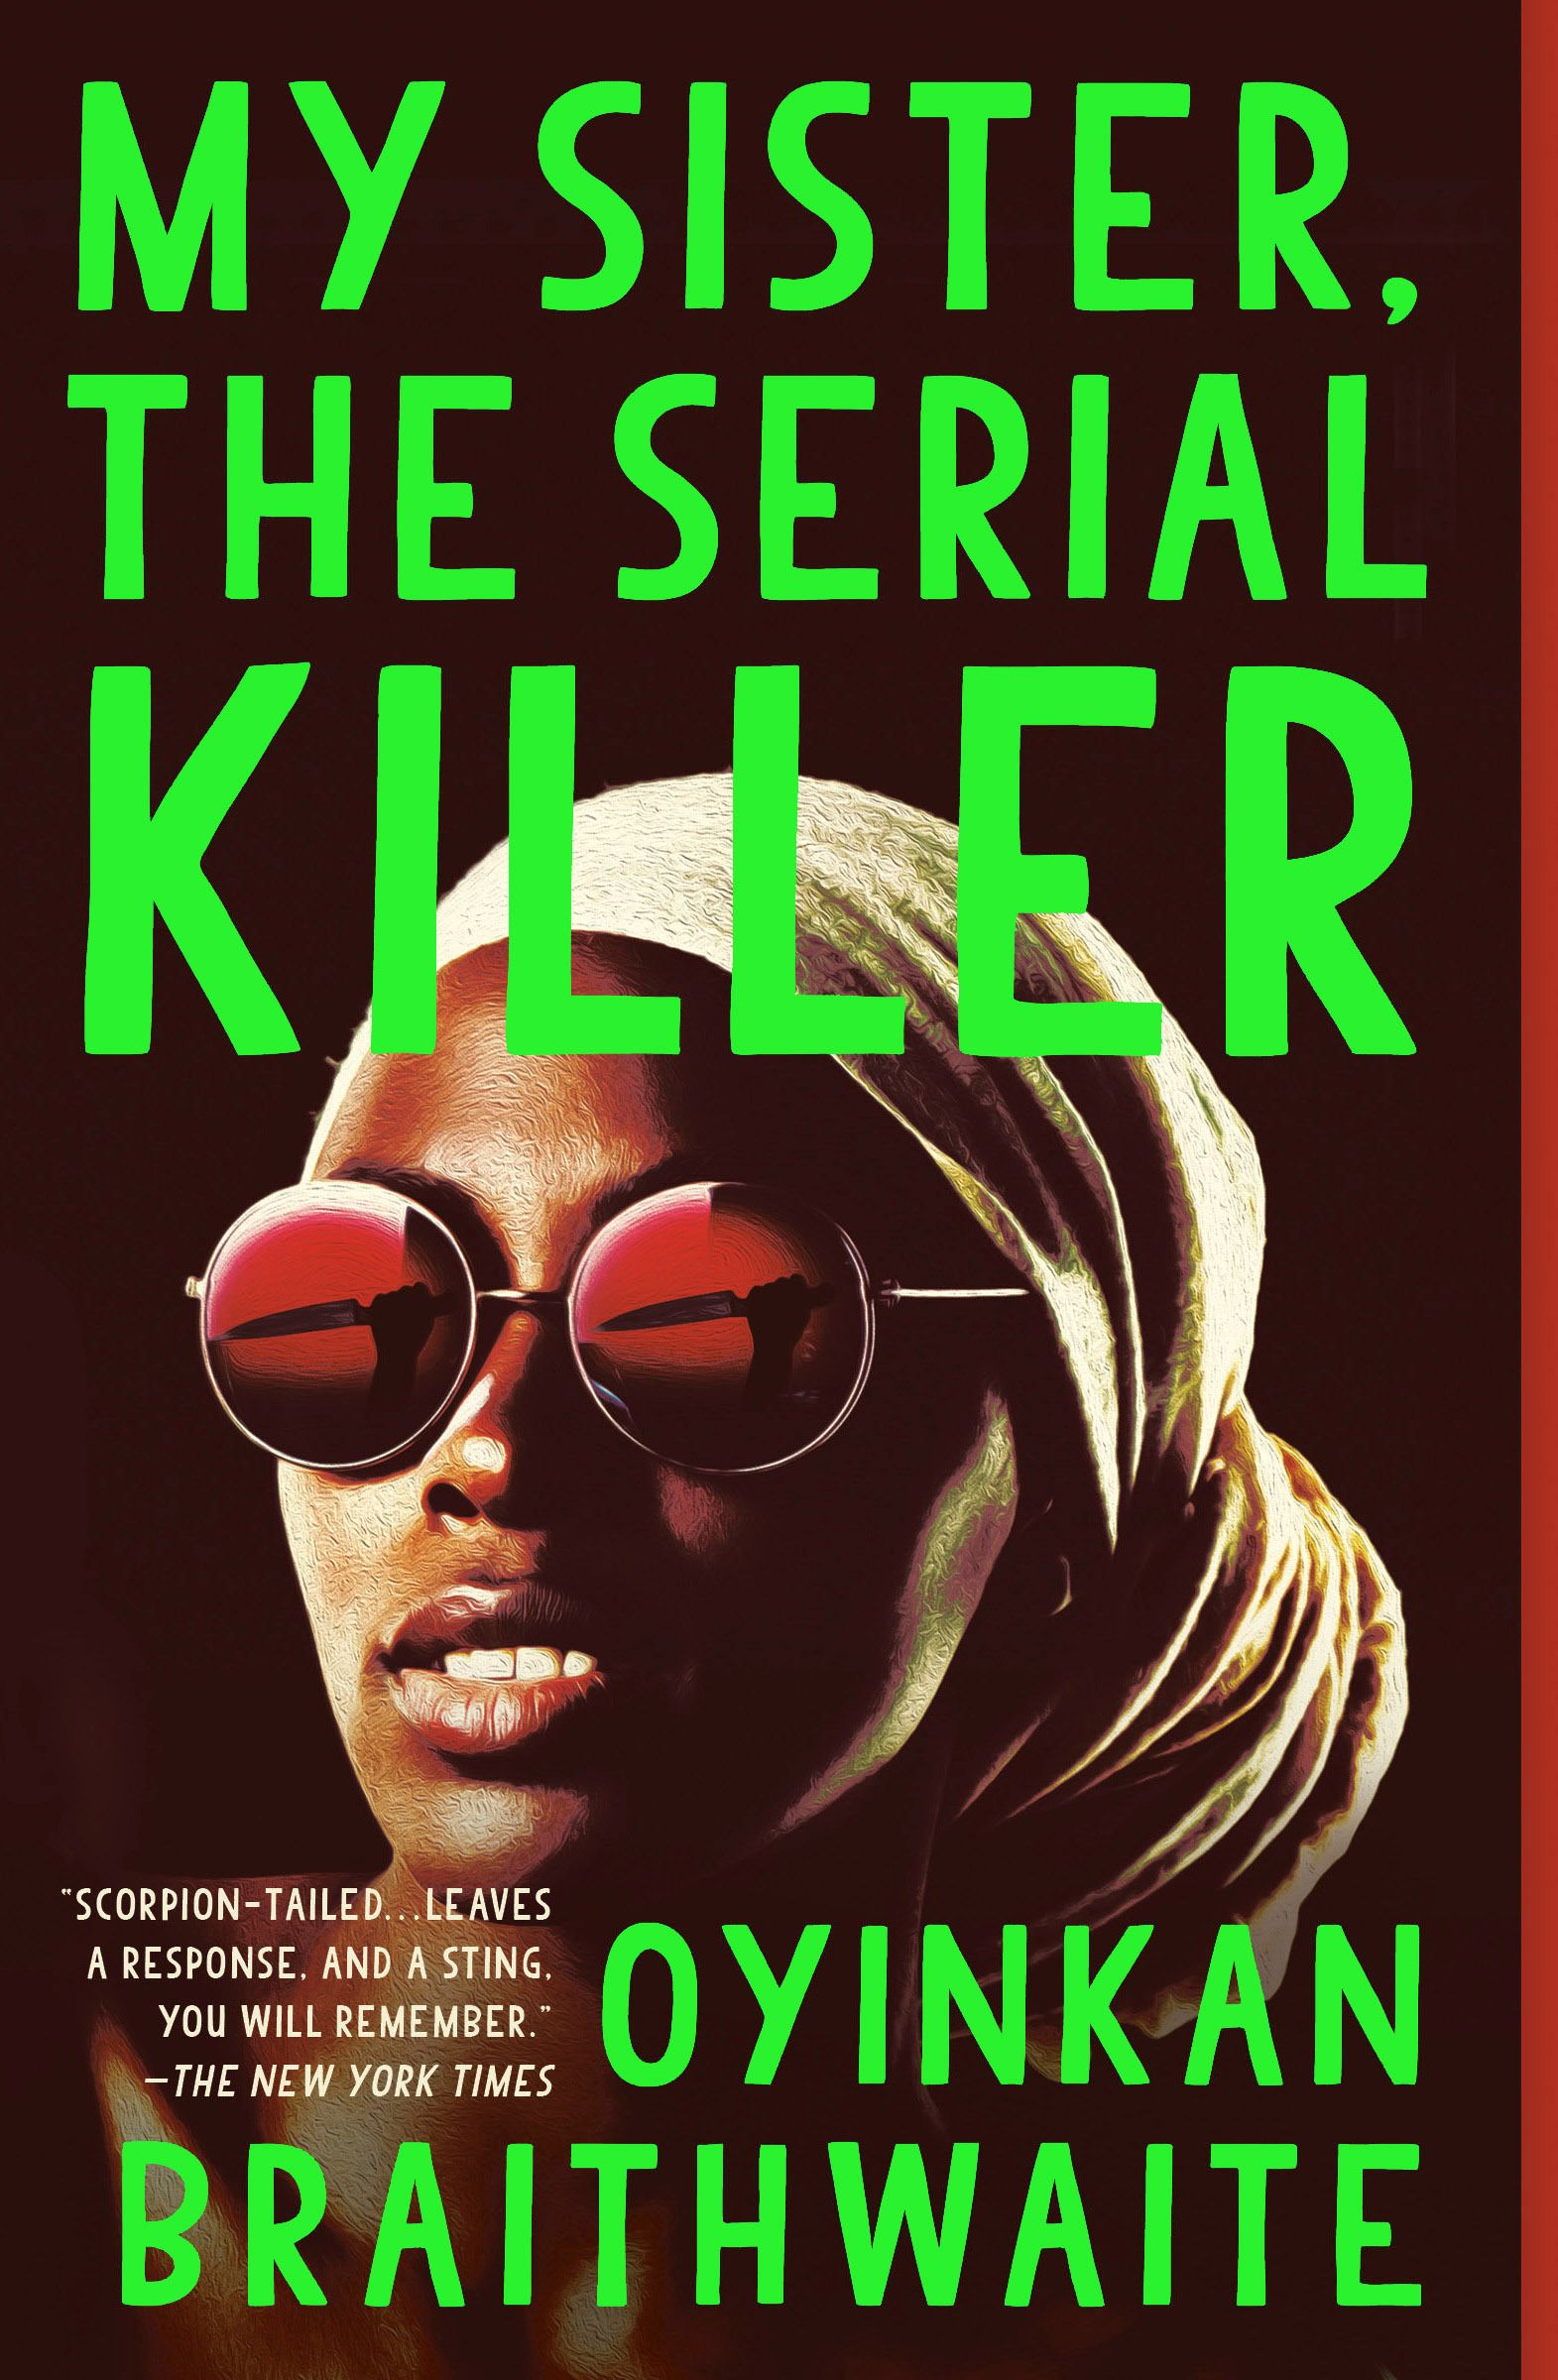 My sister, the serial killer - This one seems wild. Set in Nigeria about a complicated sister relationship, Korede knows when her sister, Ayoola, calls she will need to bring her murder cleanup kit. Conflicted if she should call the police but it's not until Ayoola starts dating one of her coworker, that she's been secretly in love with does Korede feel conflicted on who's side to be on. I'm super curious about this.